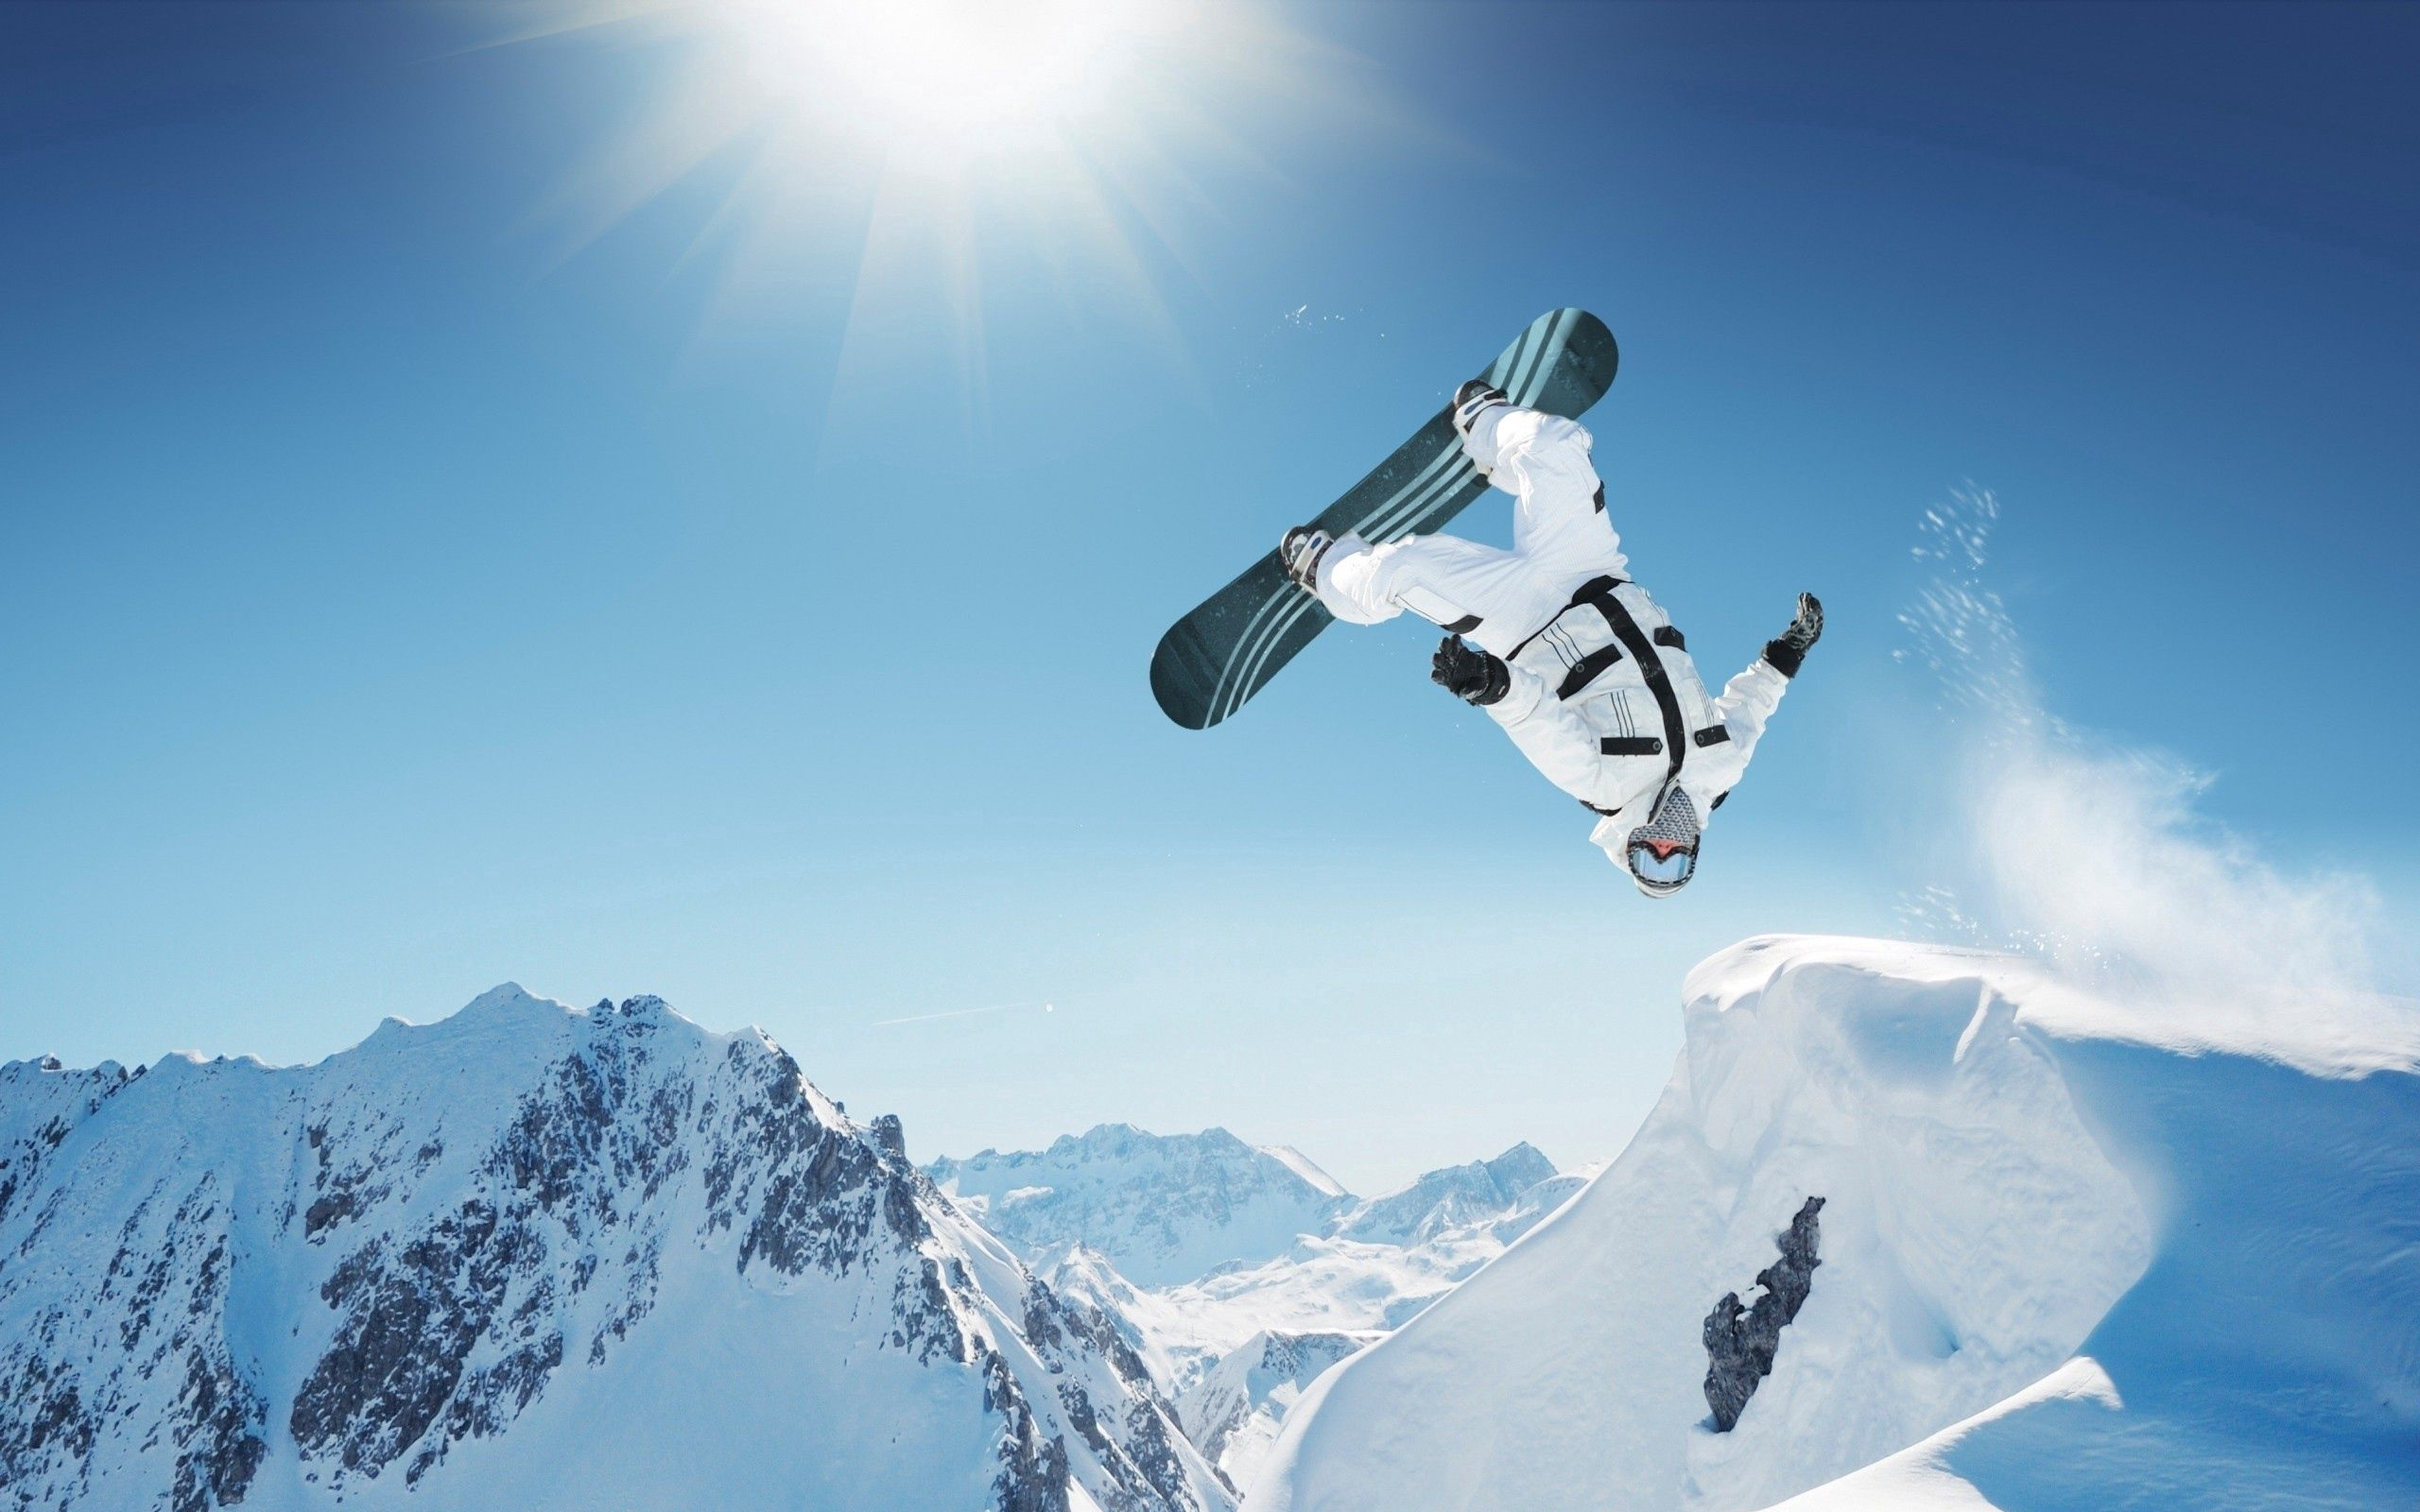 82068 free wallpaper 720x1280 for phone, download images Sports, Mountains, Bounce, Jump, Snowboard, Extreme, Trick 720x1280 for mobile